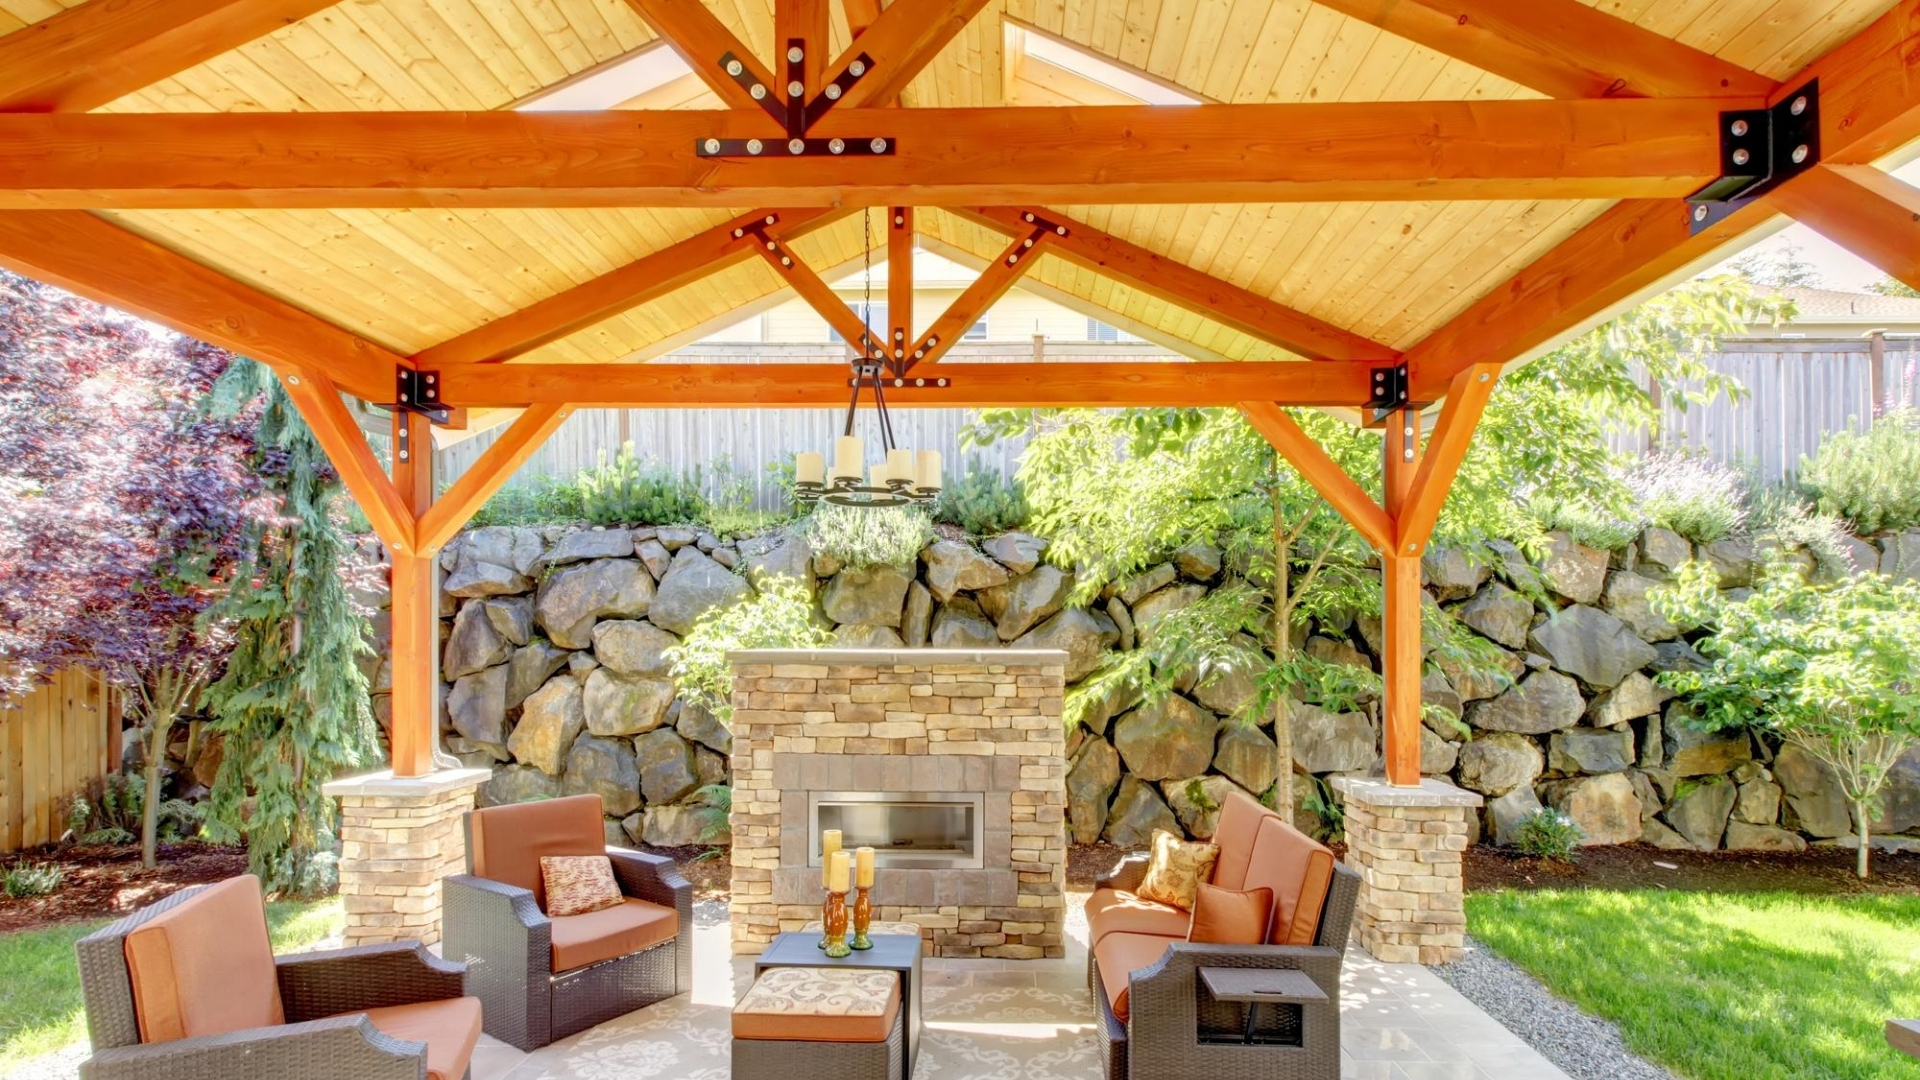 mcdermott remodeling covered patio ideas